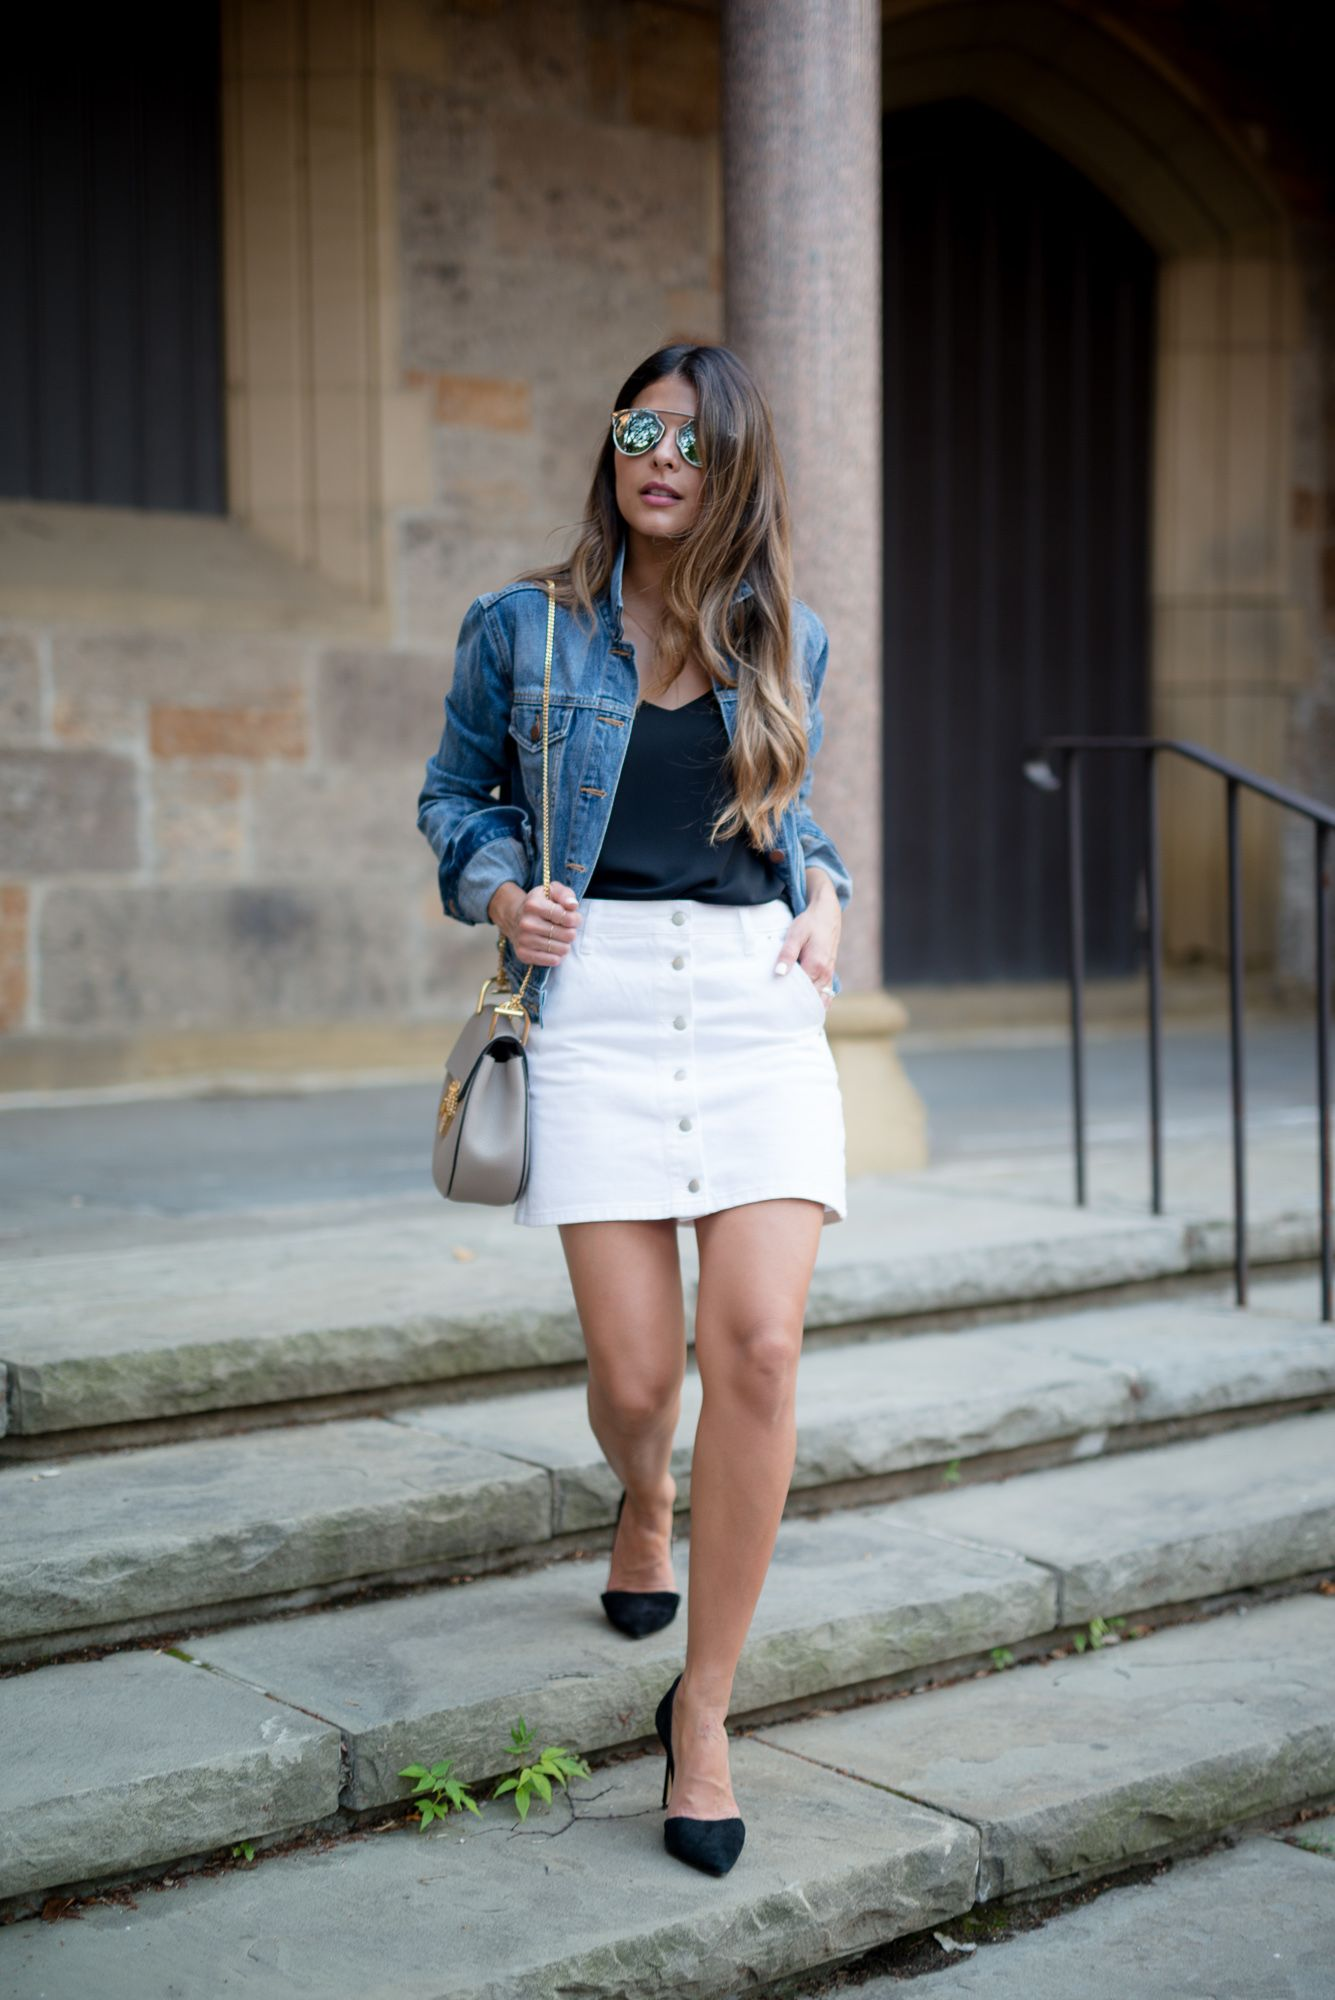 The Girl from Panama - A Personal Style and Beauty Blog by Pam Hetlinger.